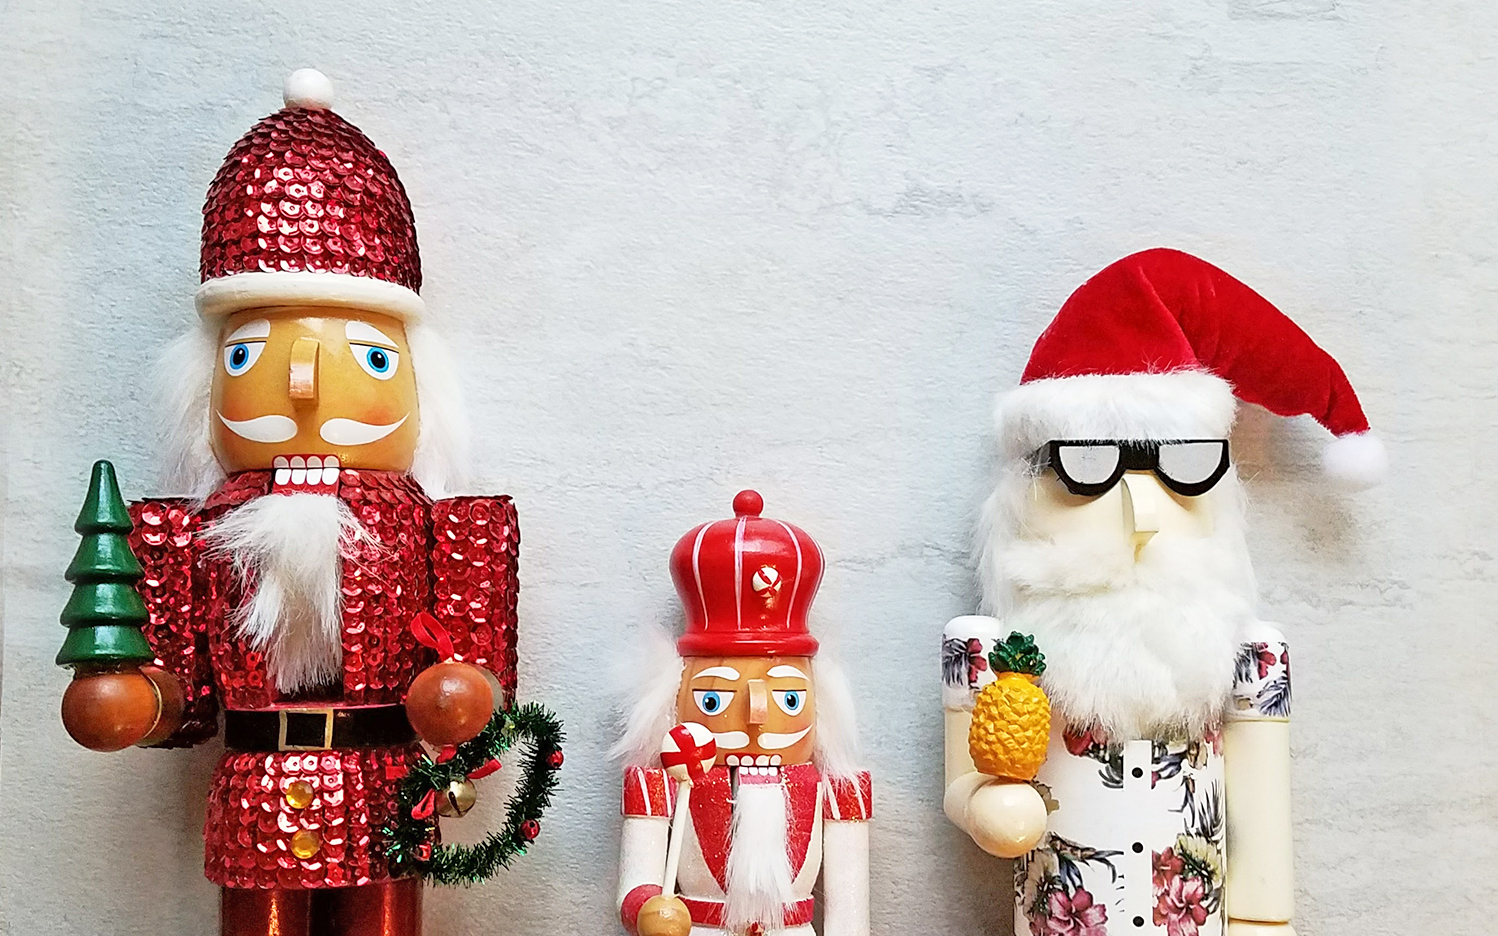 Festive Vibes: 25 Pieces of Holiday Inspiration